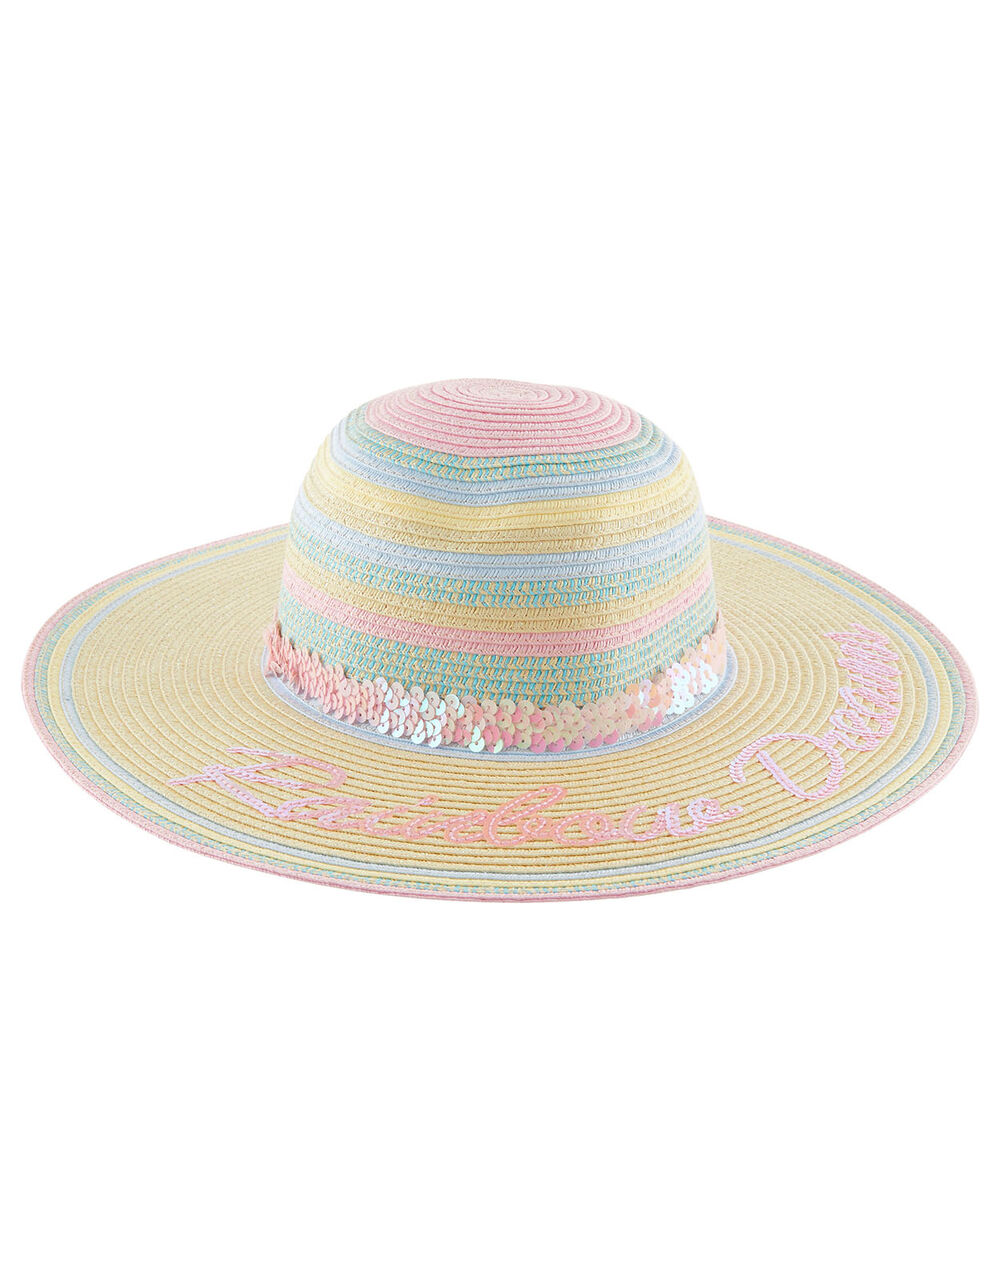 Rainbow Dreams Sequin Floppy Hat, Multi (MULTI), large